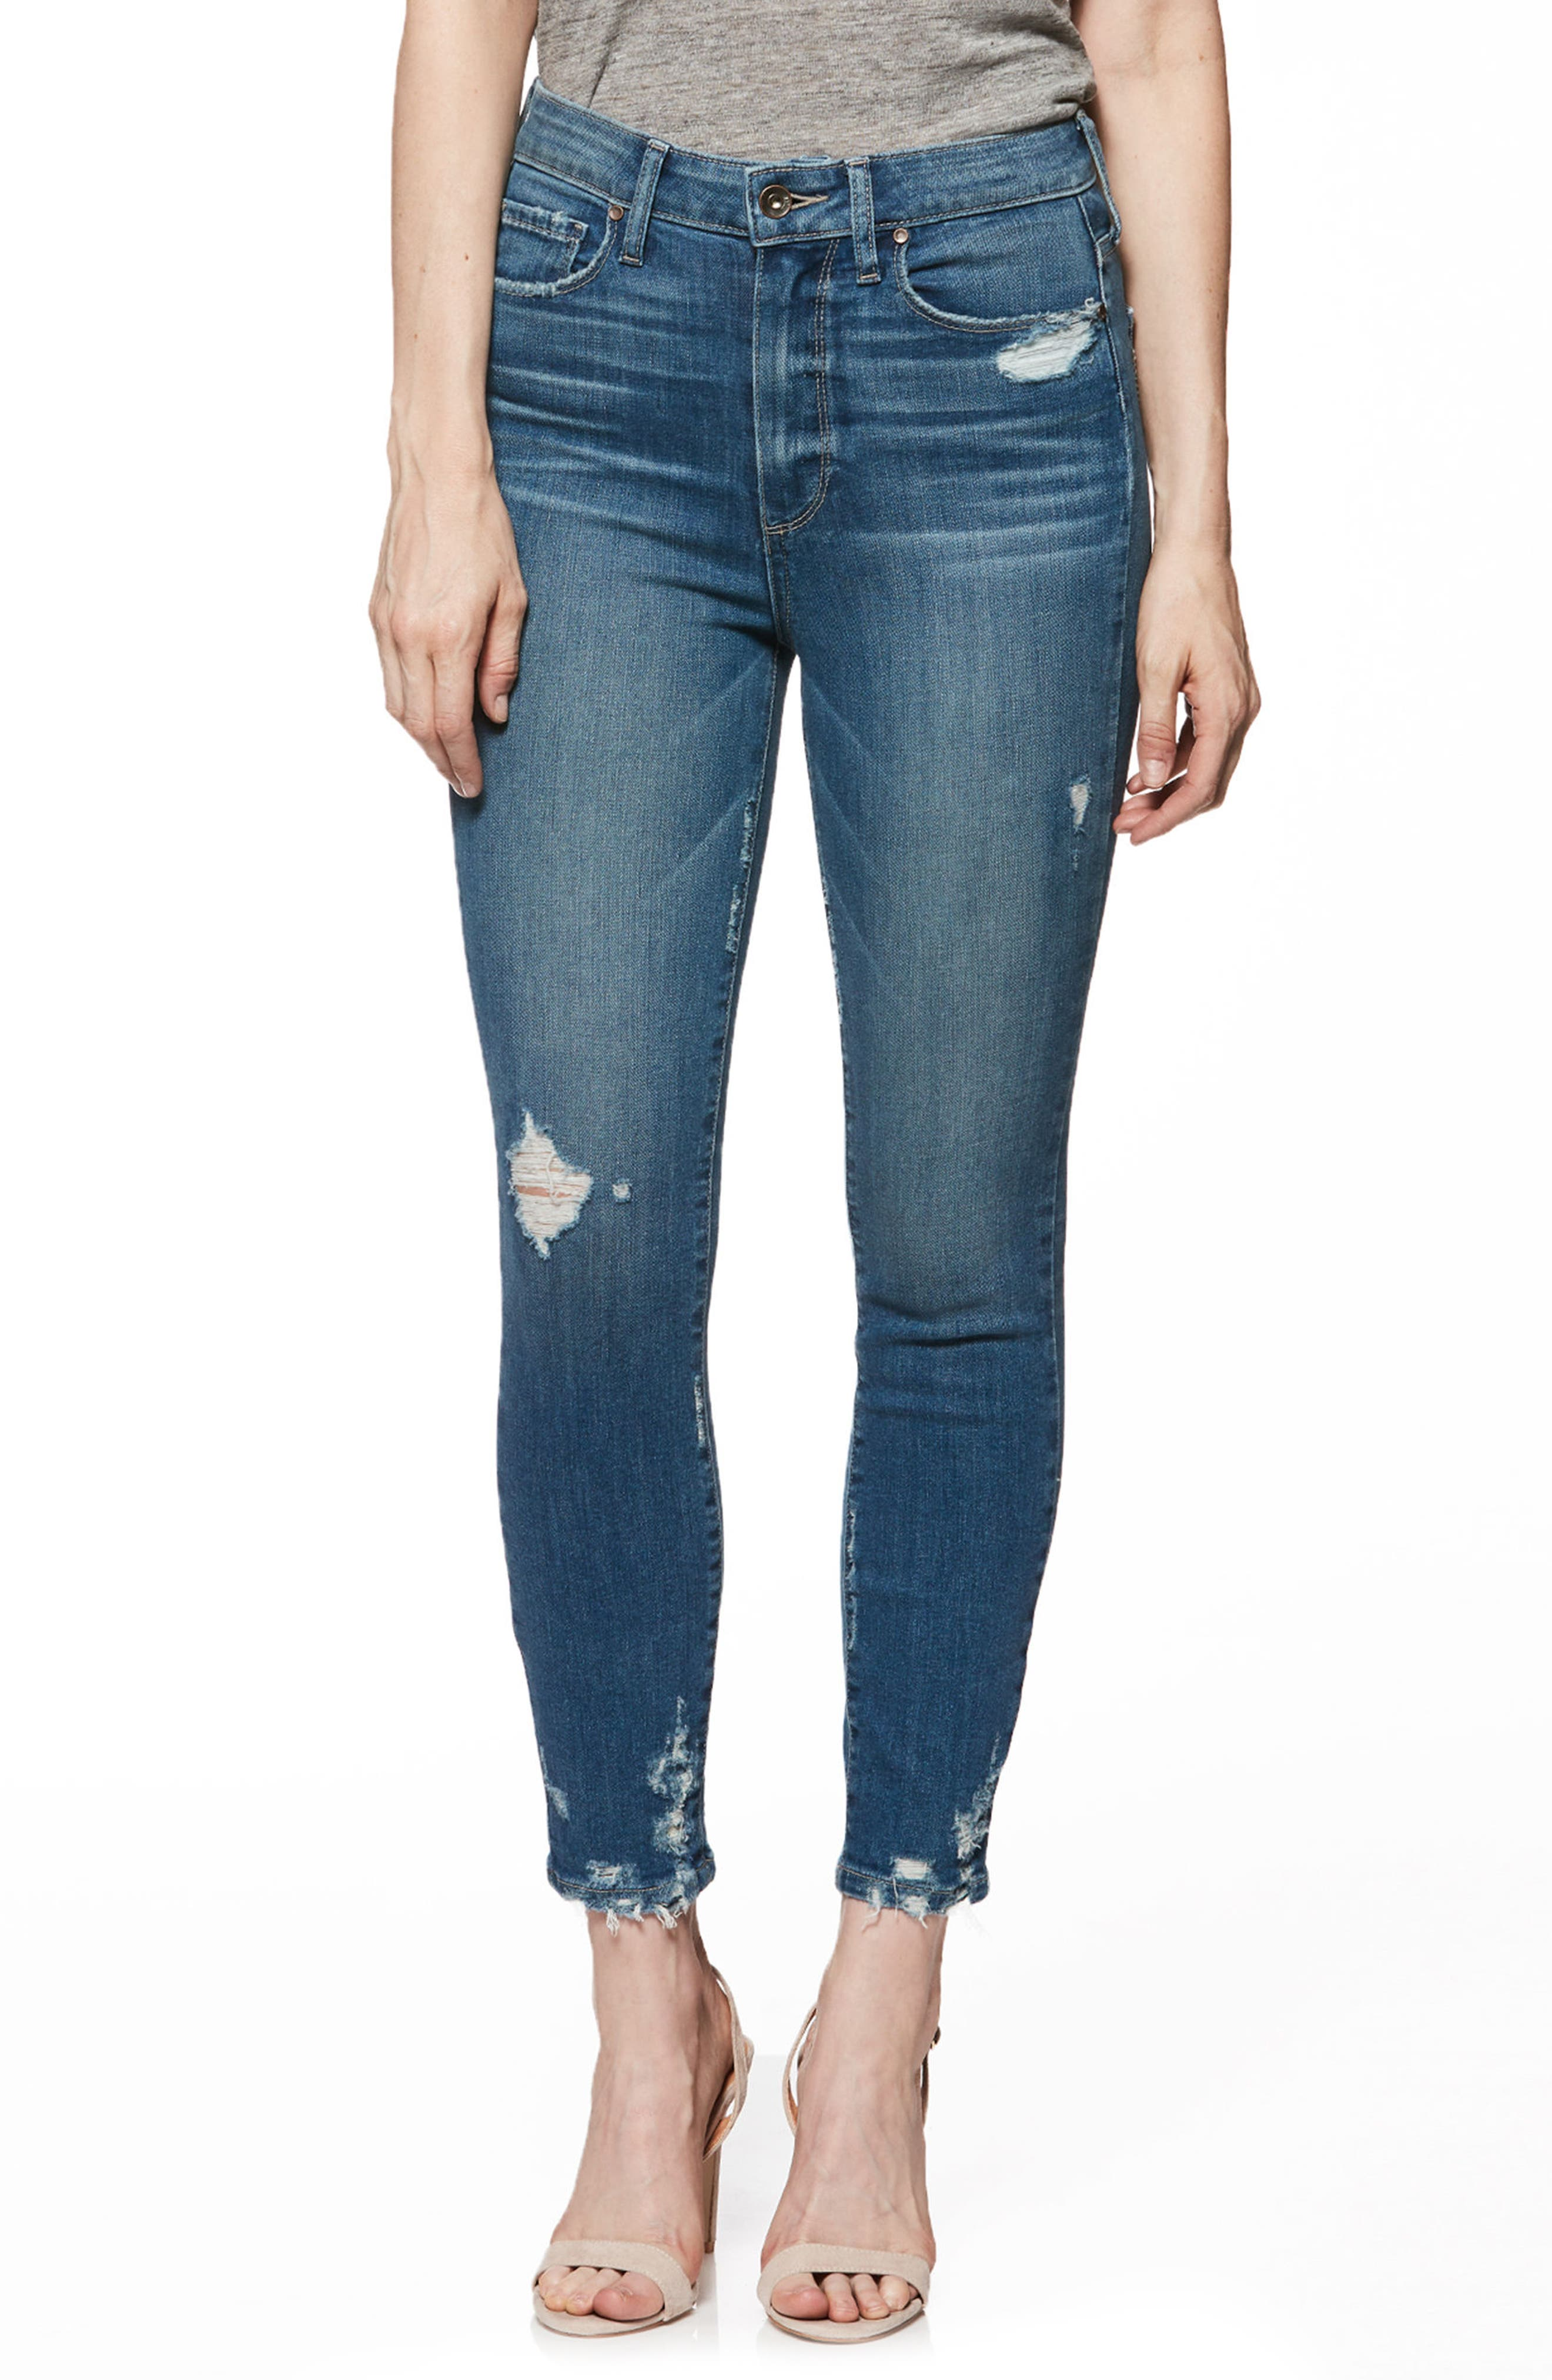 Transcend Vintage - Margot High Waist Crop Skinny Jeans,                             Main thumbnail 1, color,                             400